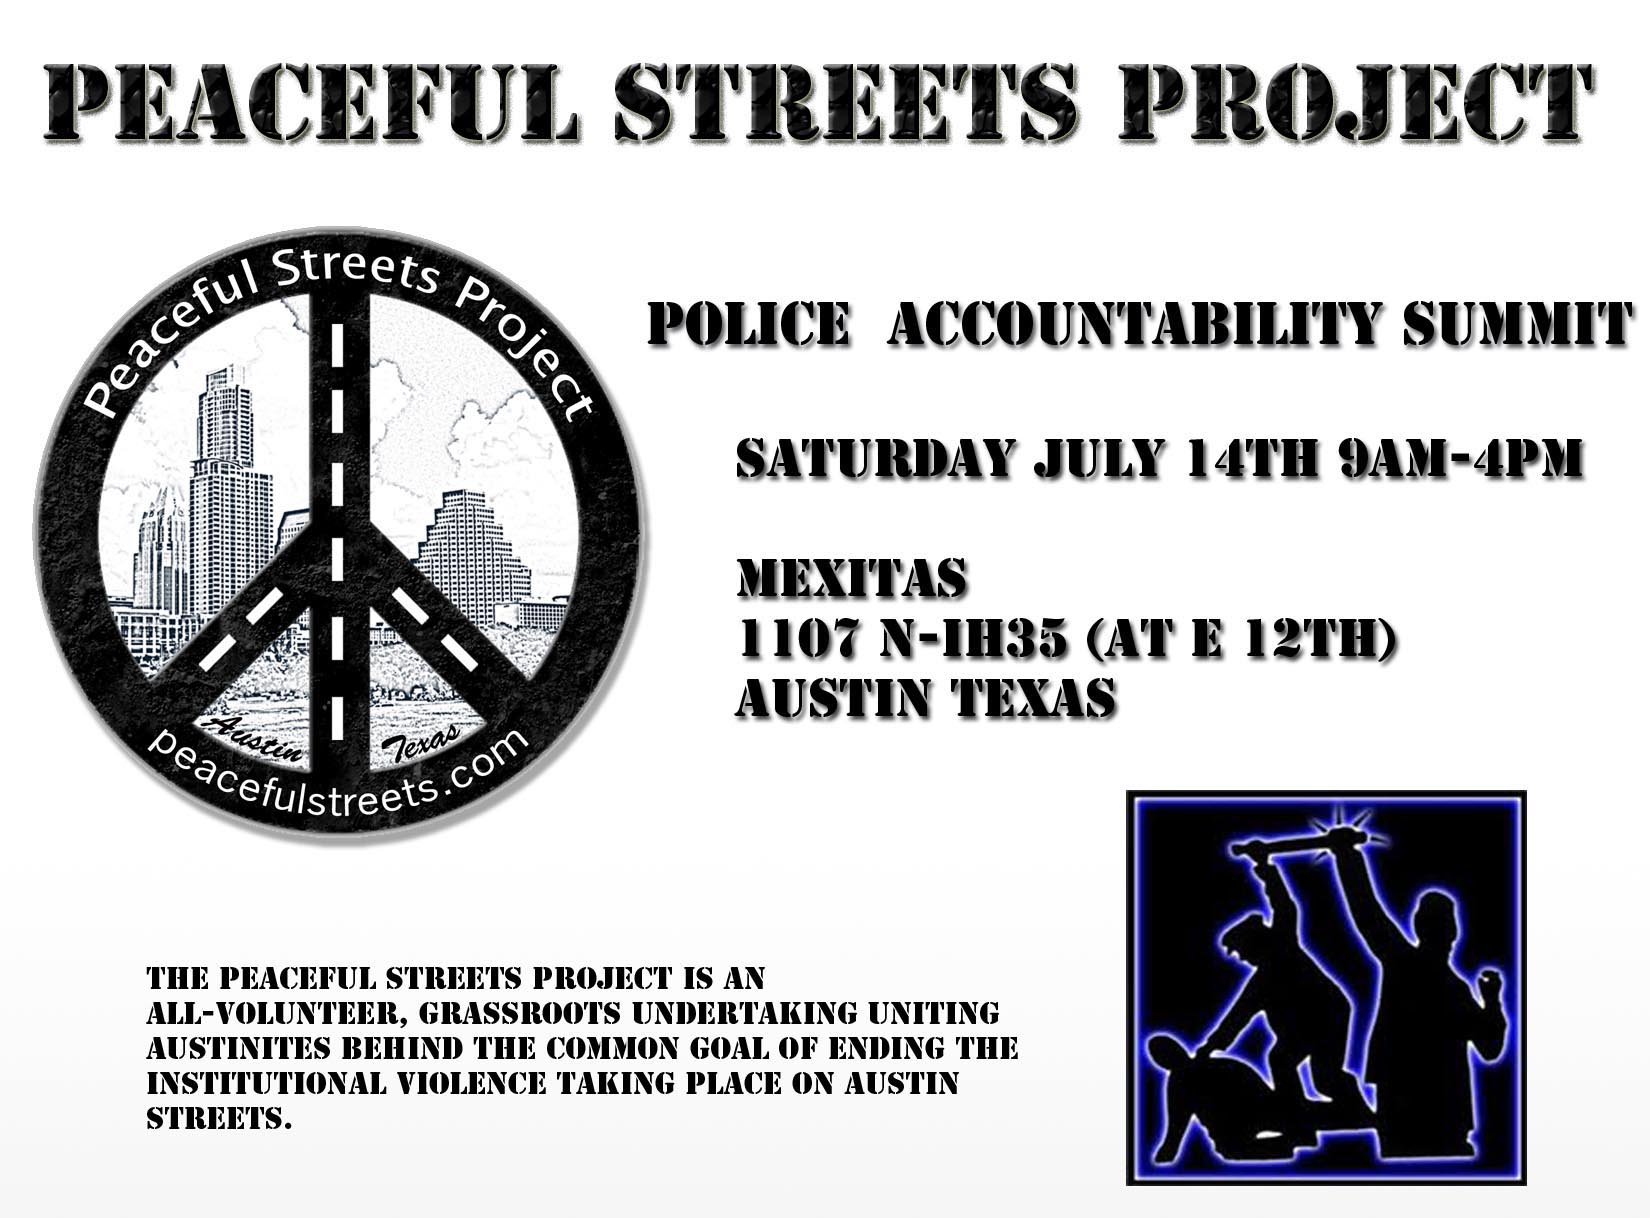 Peaceful Streets flier